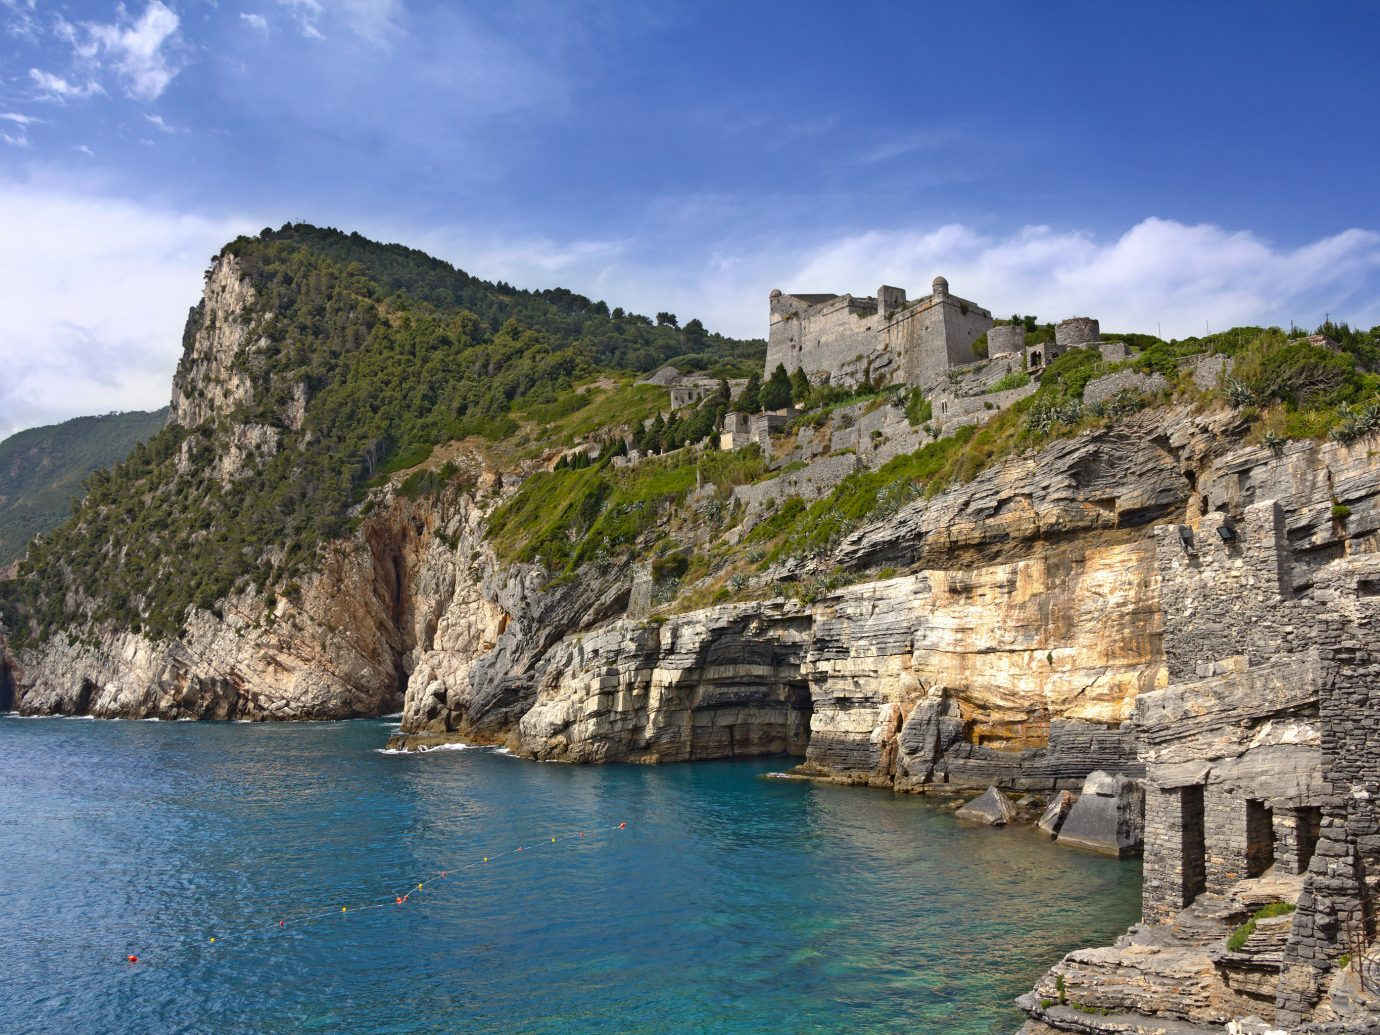 Italy Trip Ideas Coast Sea cliff coastal and oceanic landforms sky promontory headland terrain rock bay klippe cape cove escarpment tourism formation water stack inlet